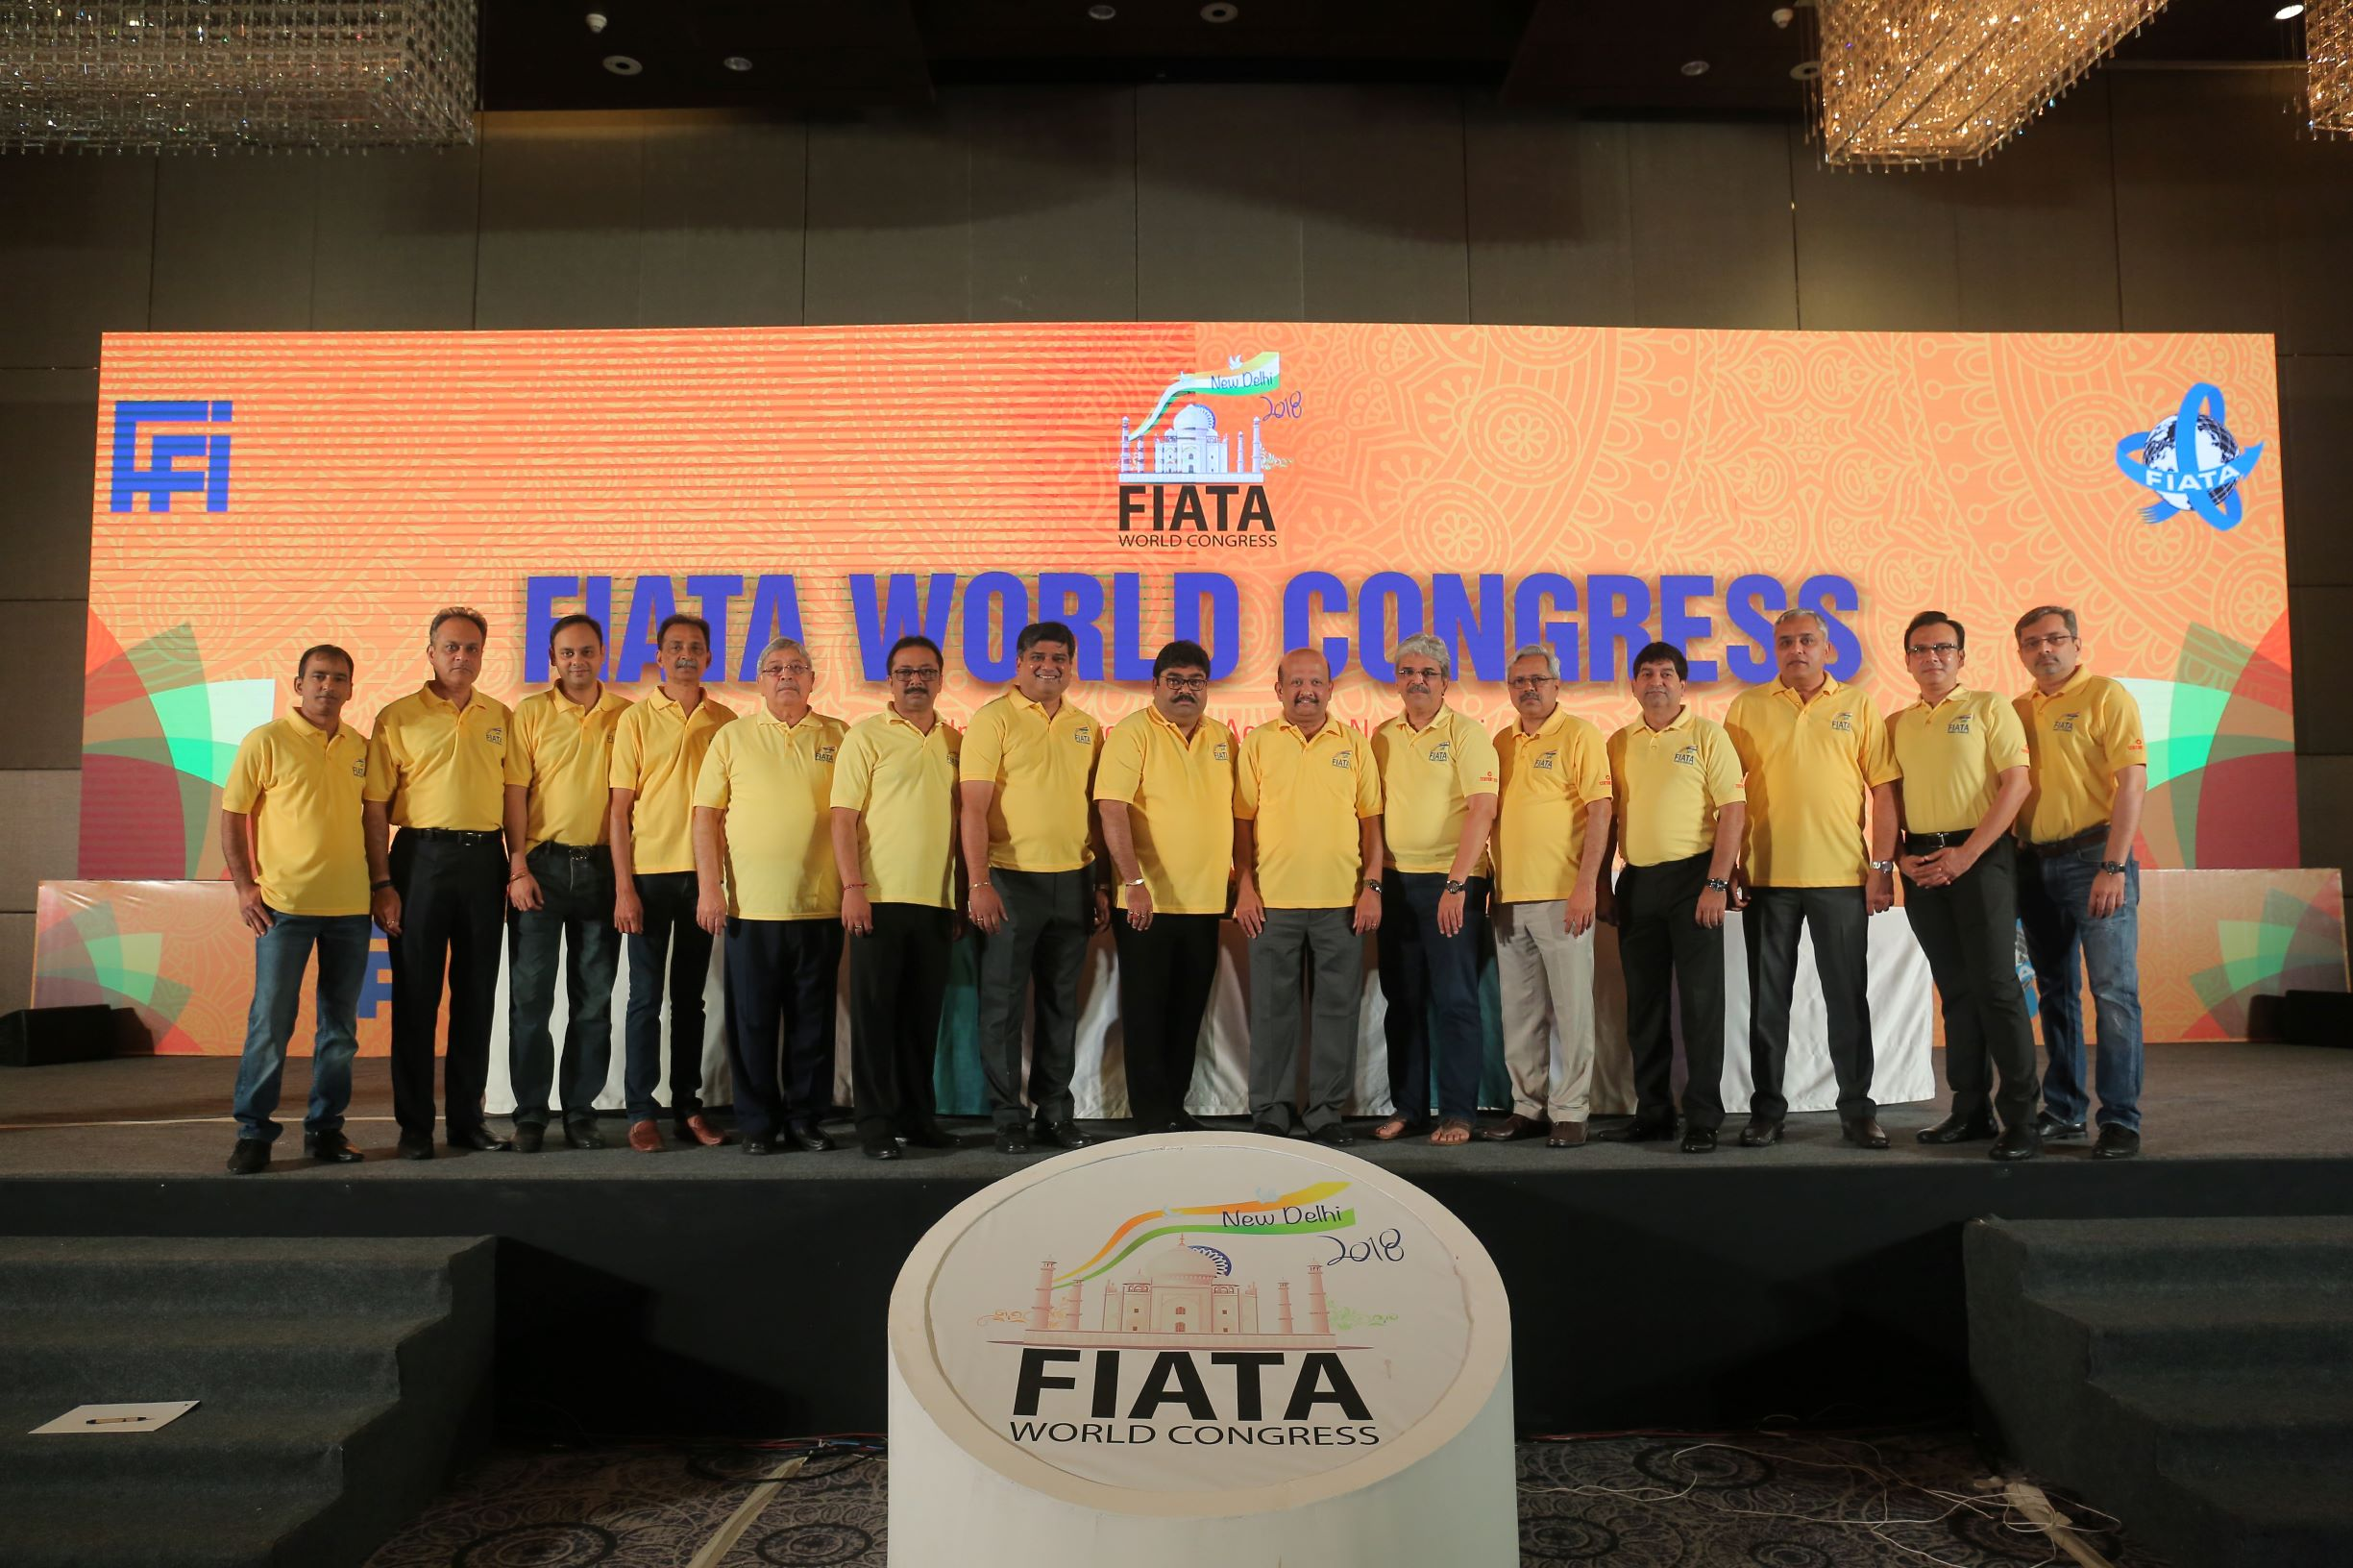 FIATA WORLD CONGRESS